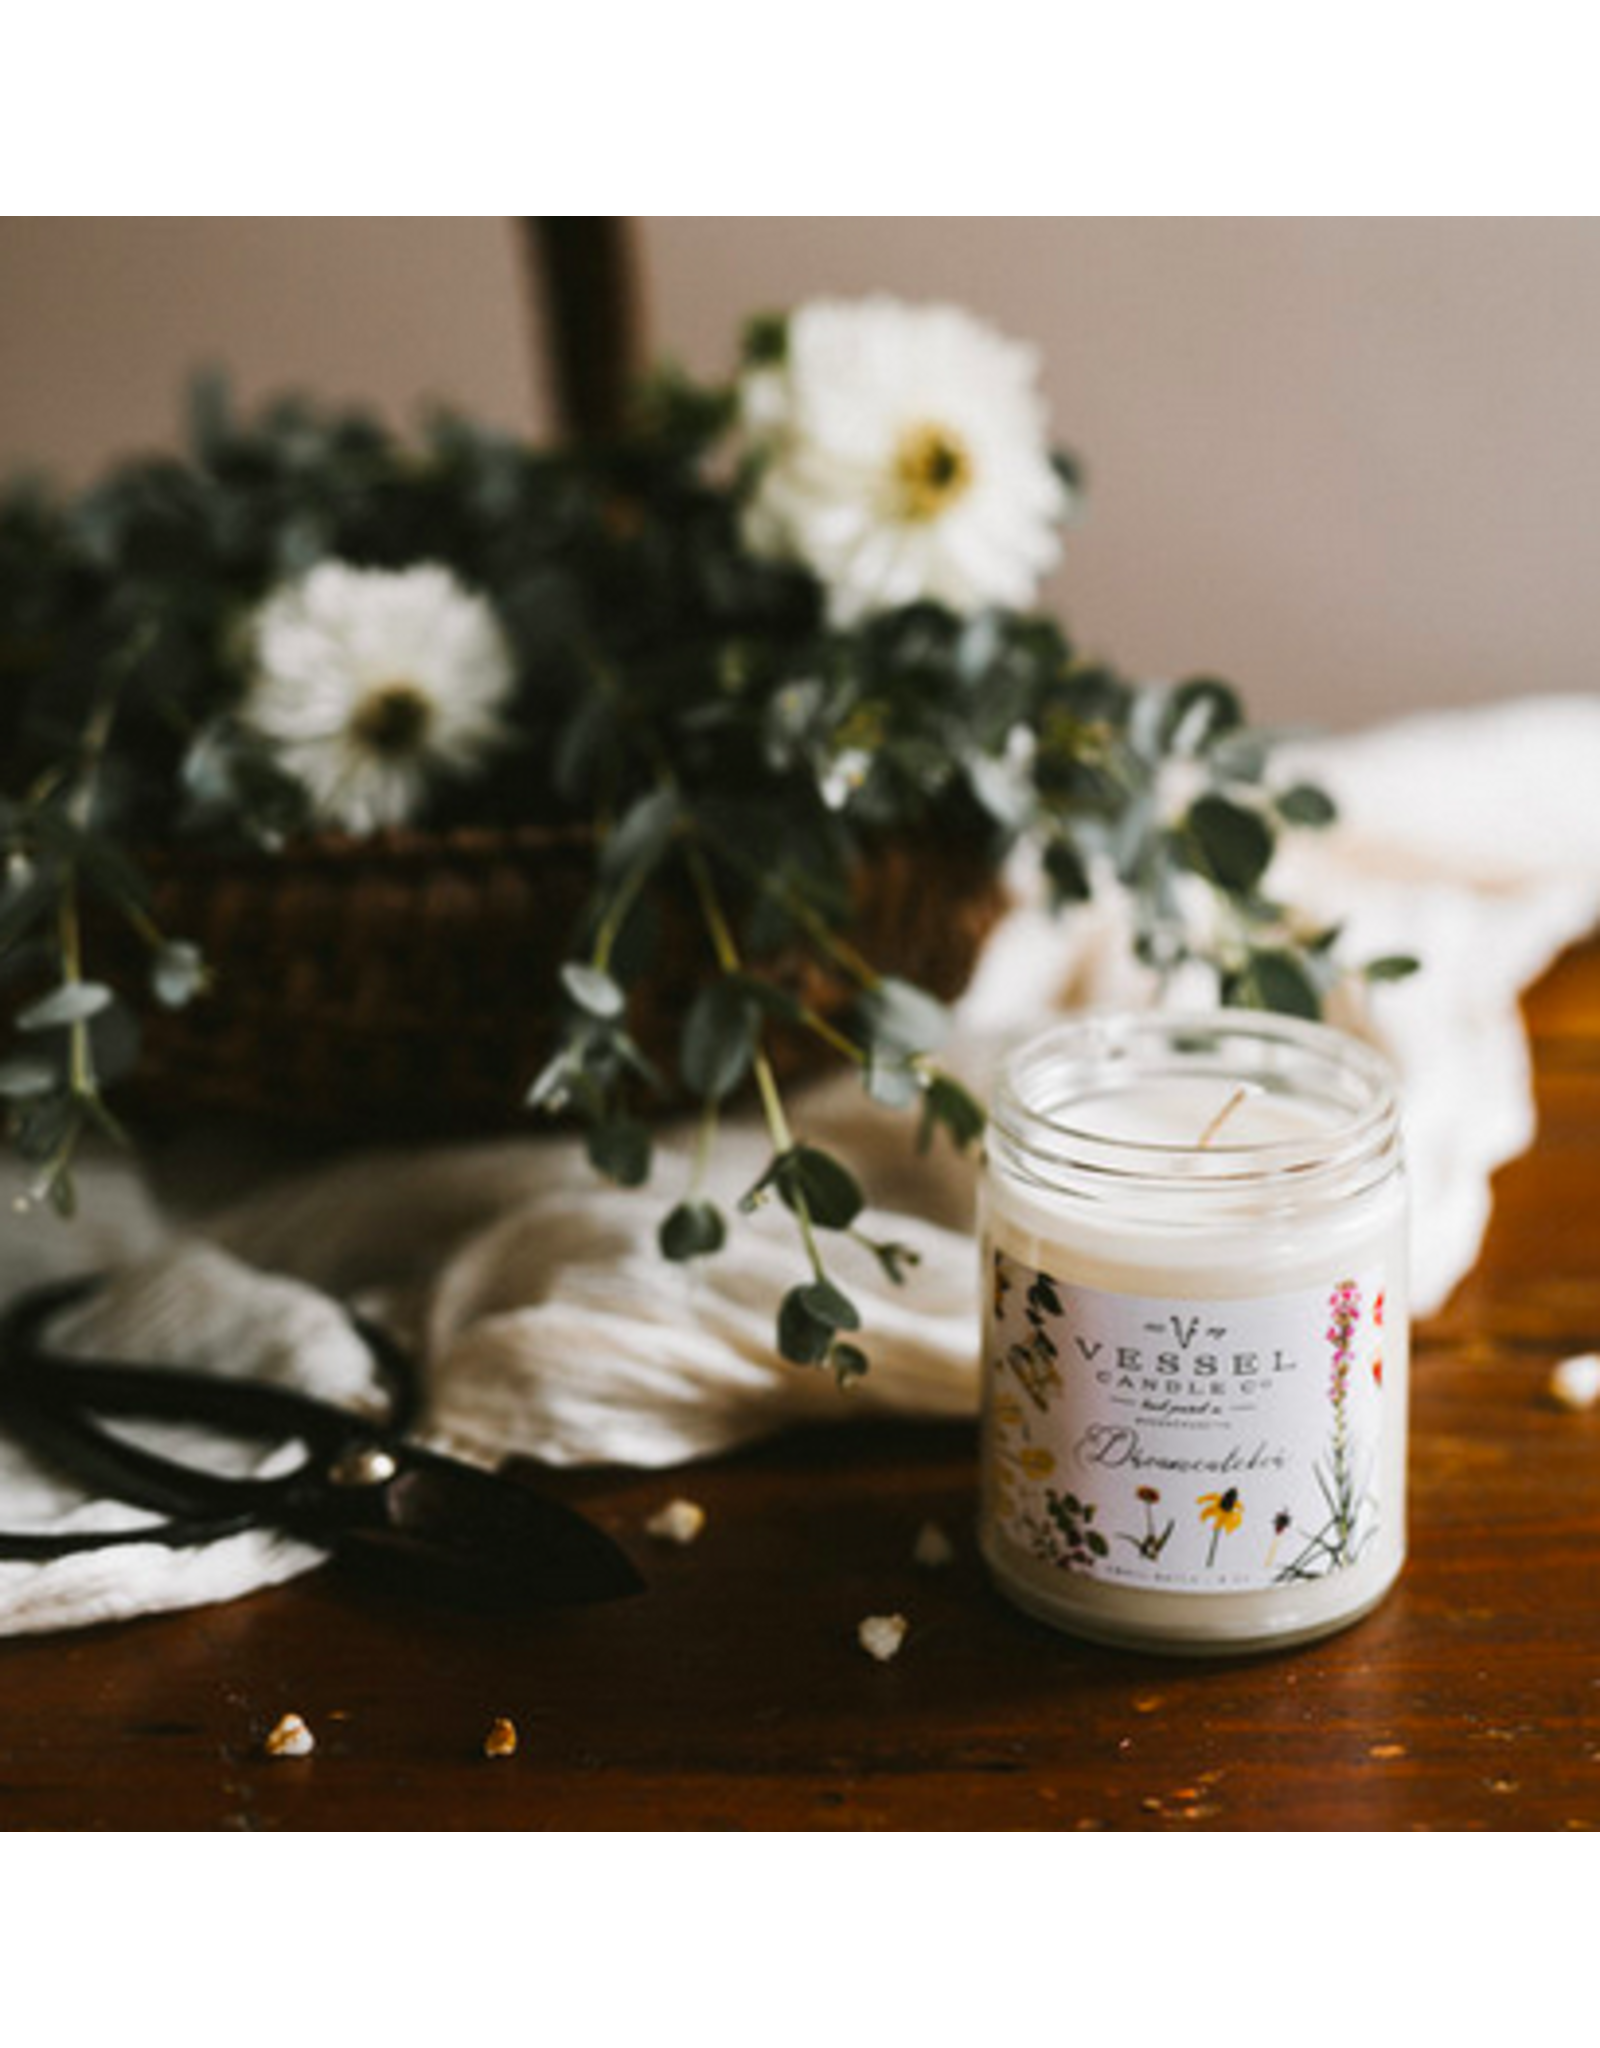 Vessel Candle Co Dreamcatcher Candle by Vessel Candle Co